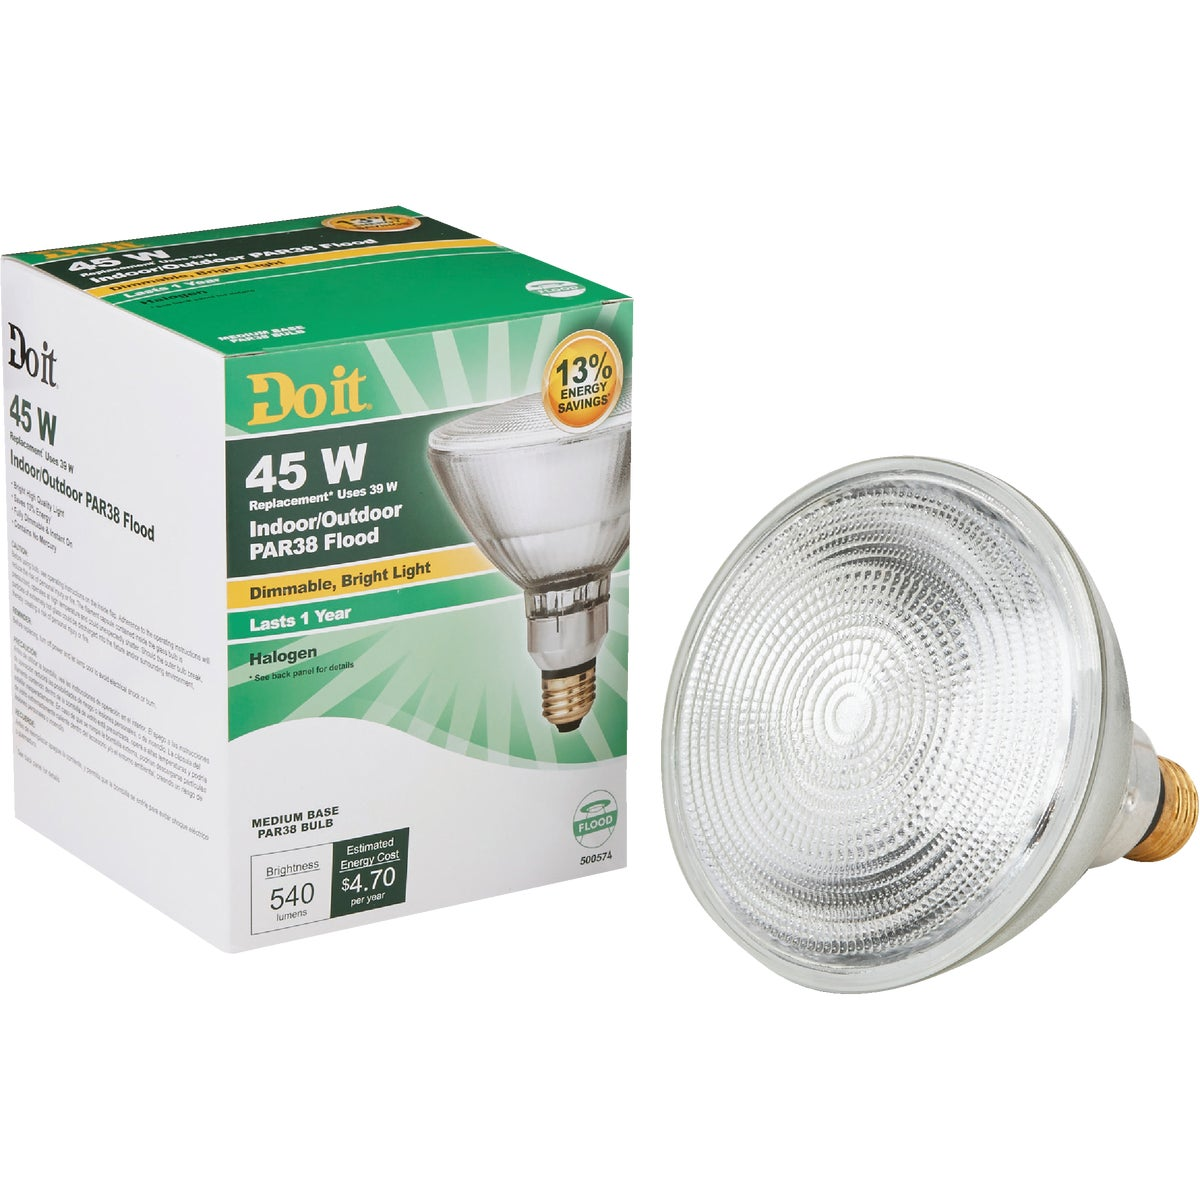 38W PAR38 HAL FLOOD BULB - 90831 by G E Private Label